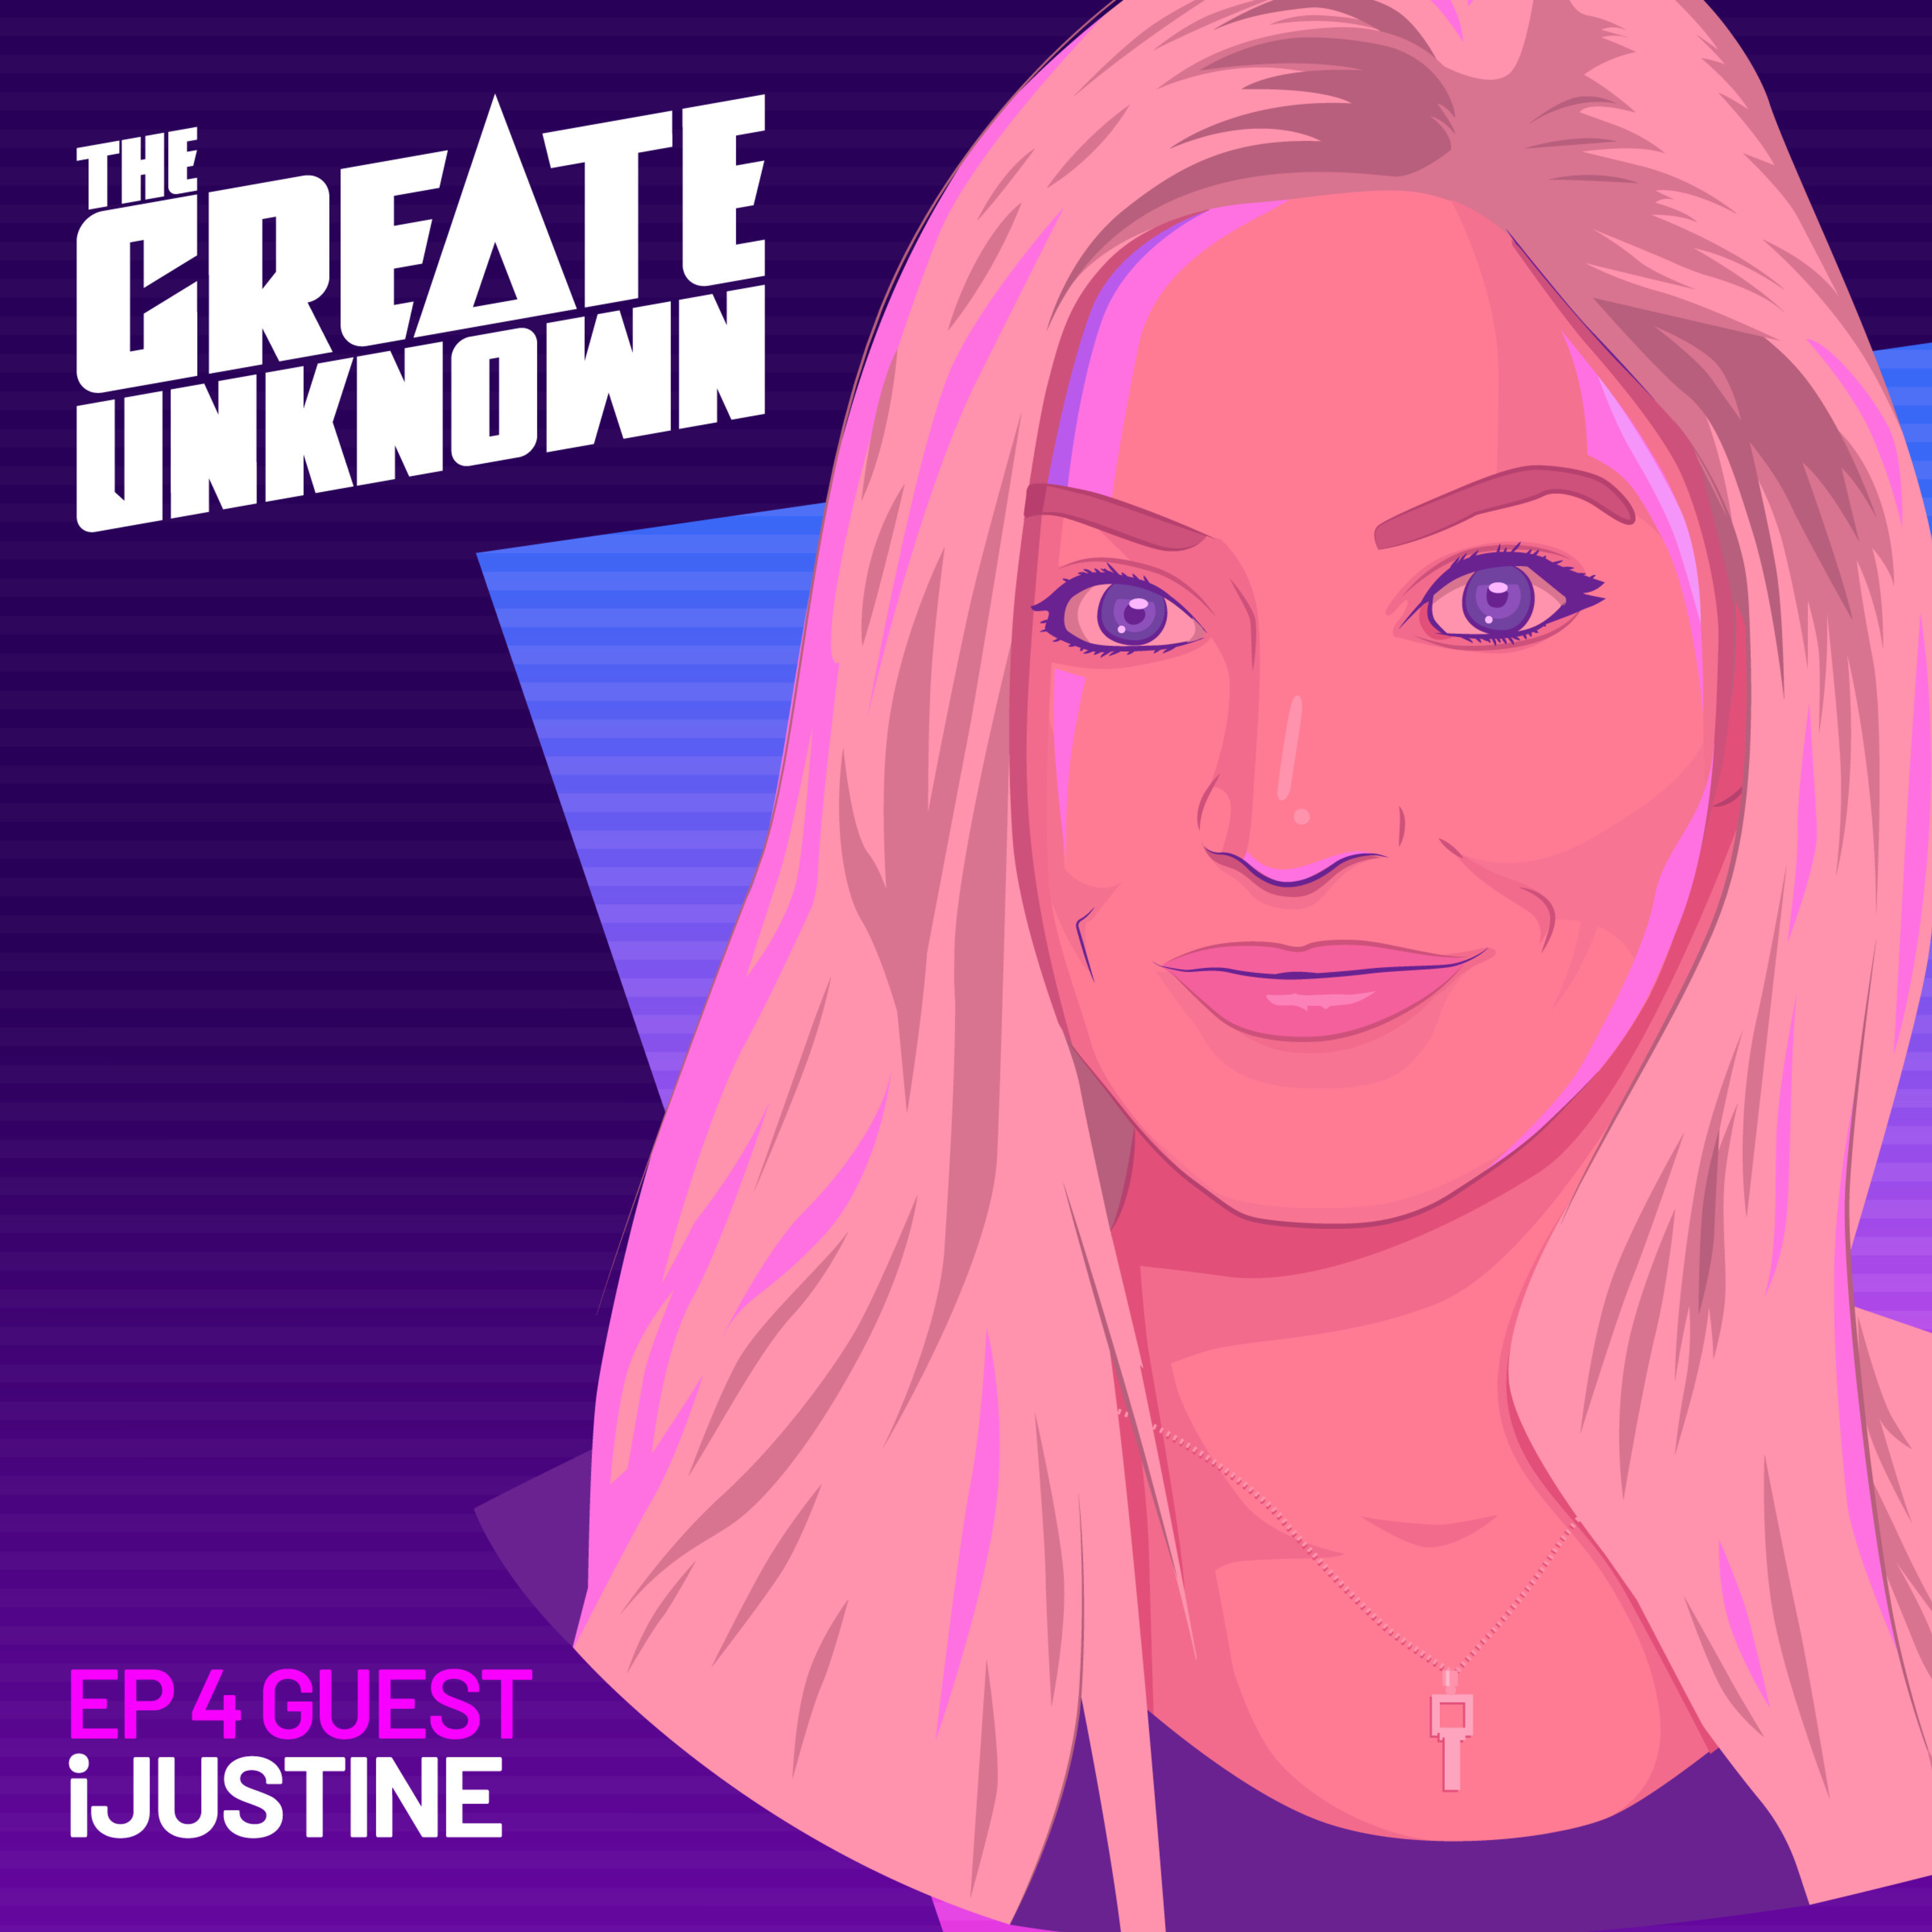 iJustine enters The Create Unknown